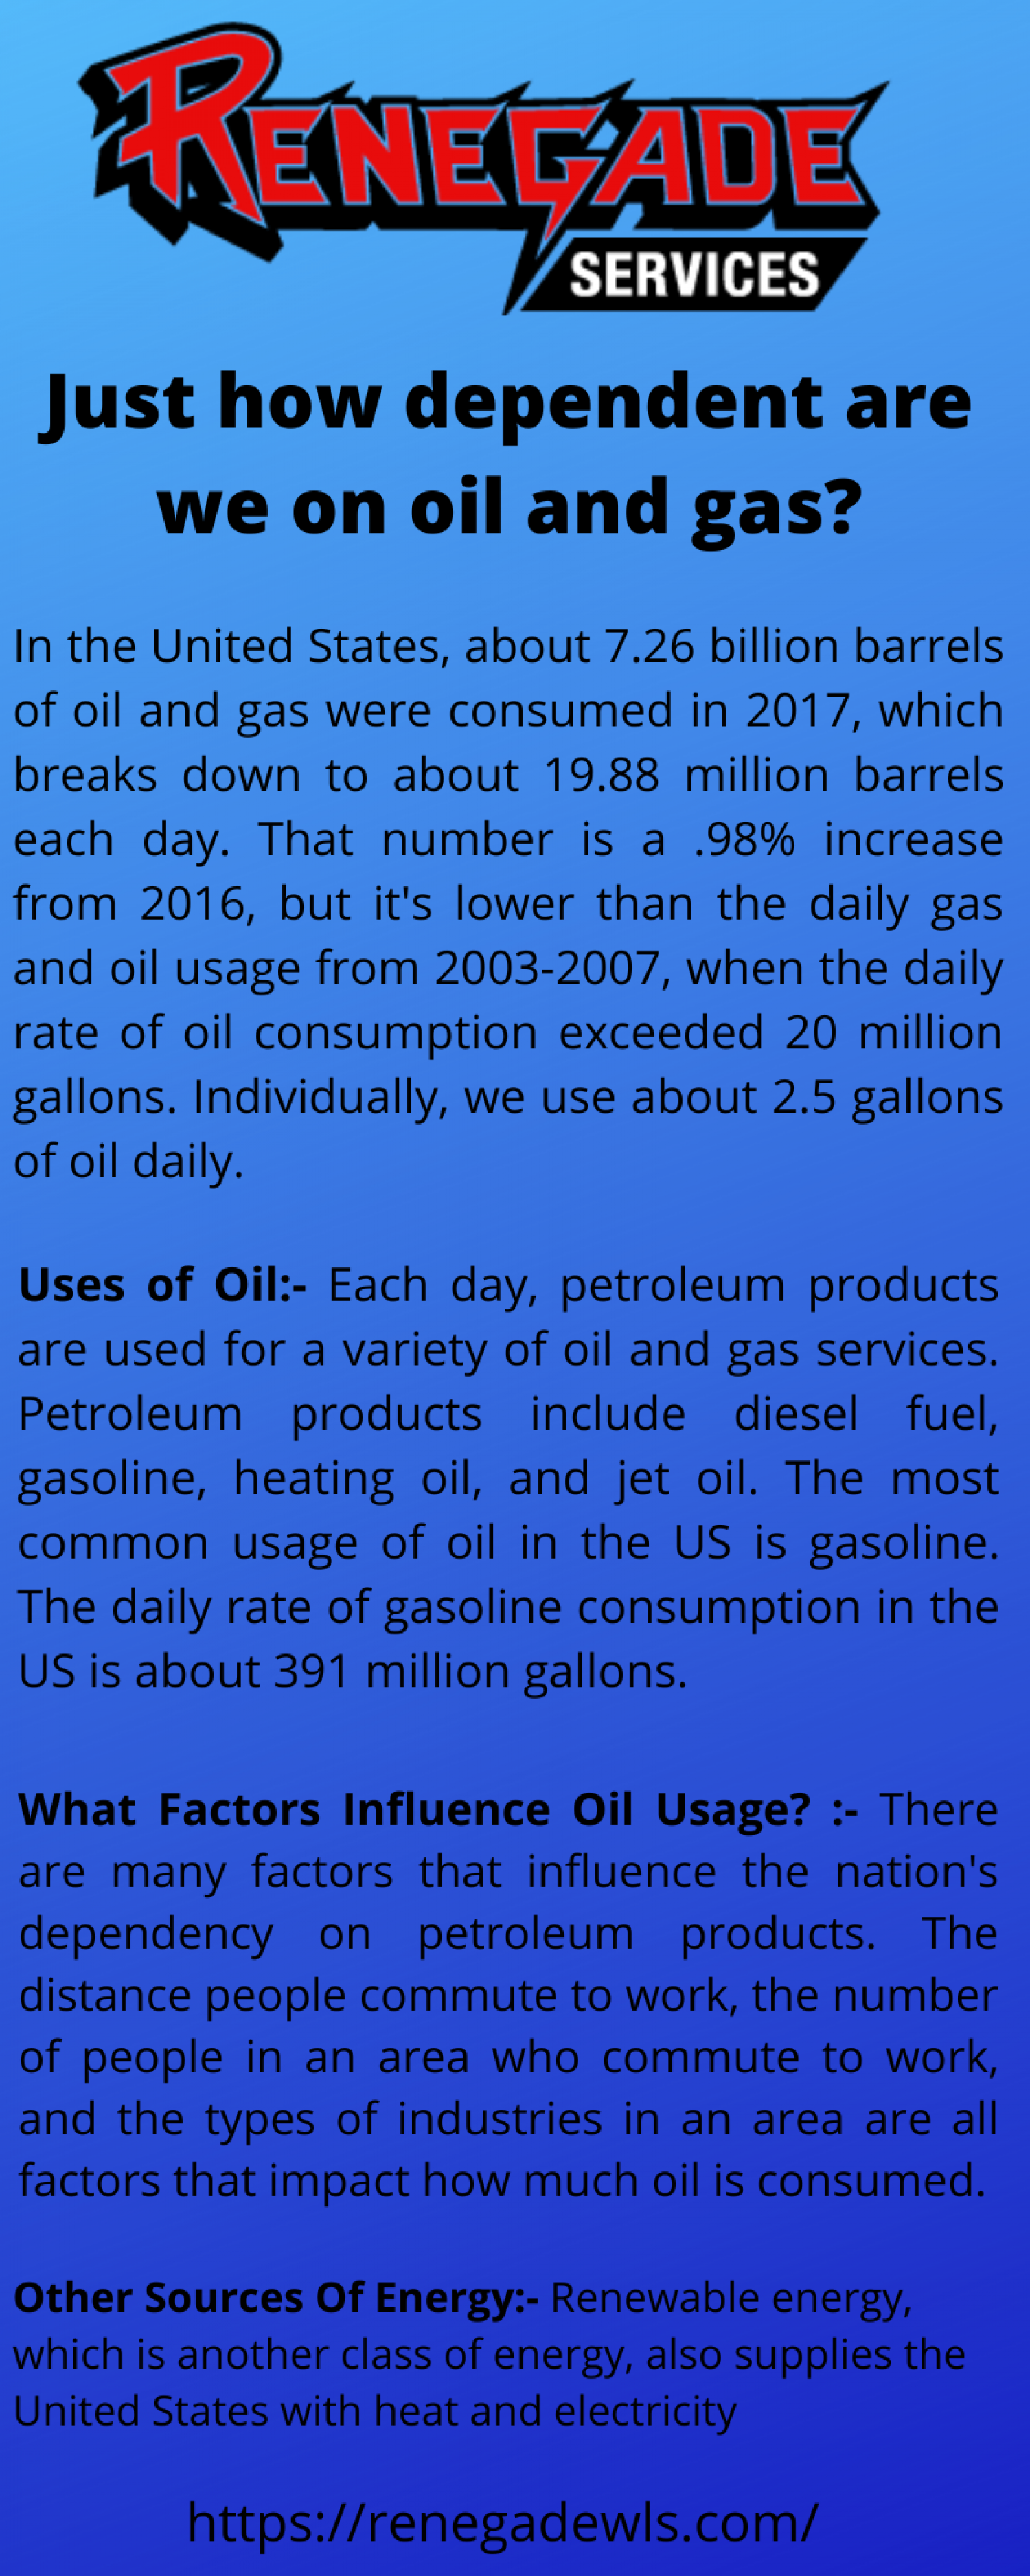 SEE HOW MUCH WE ARE DEPENDENT ON OIL AND GAS Infographic